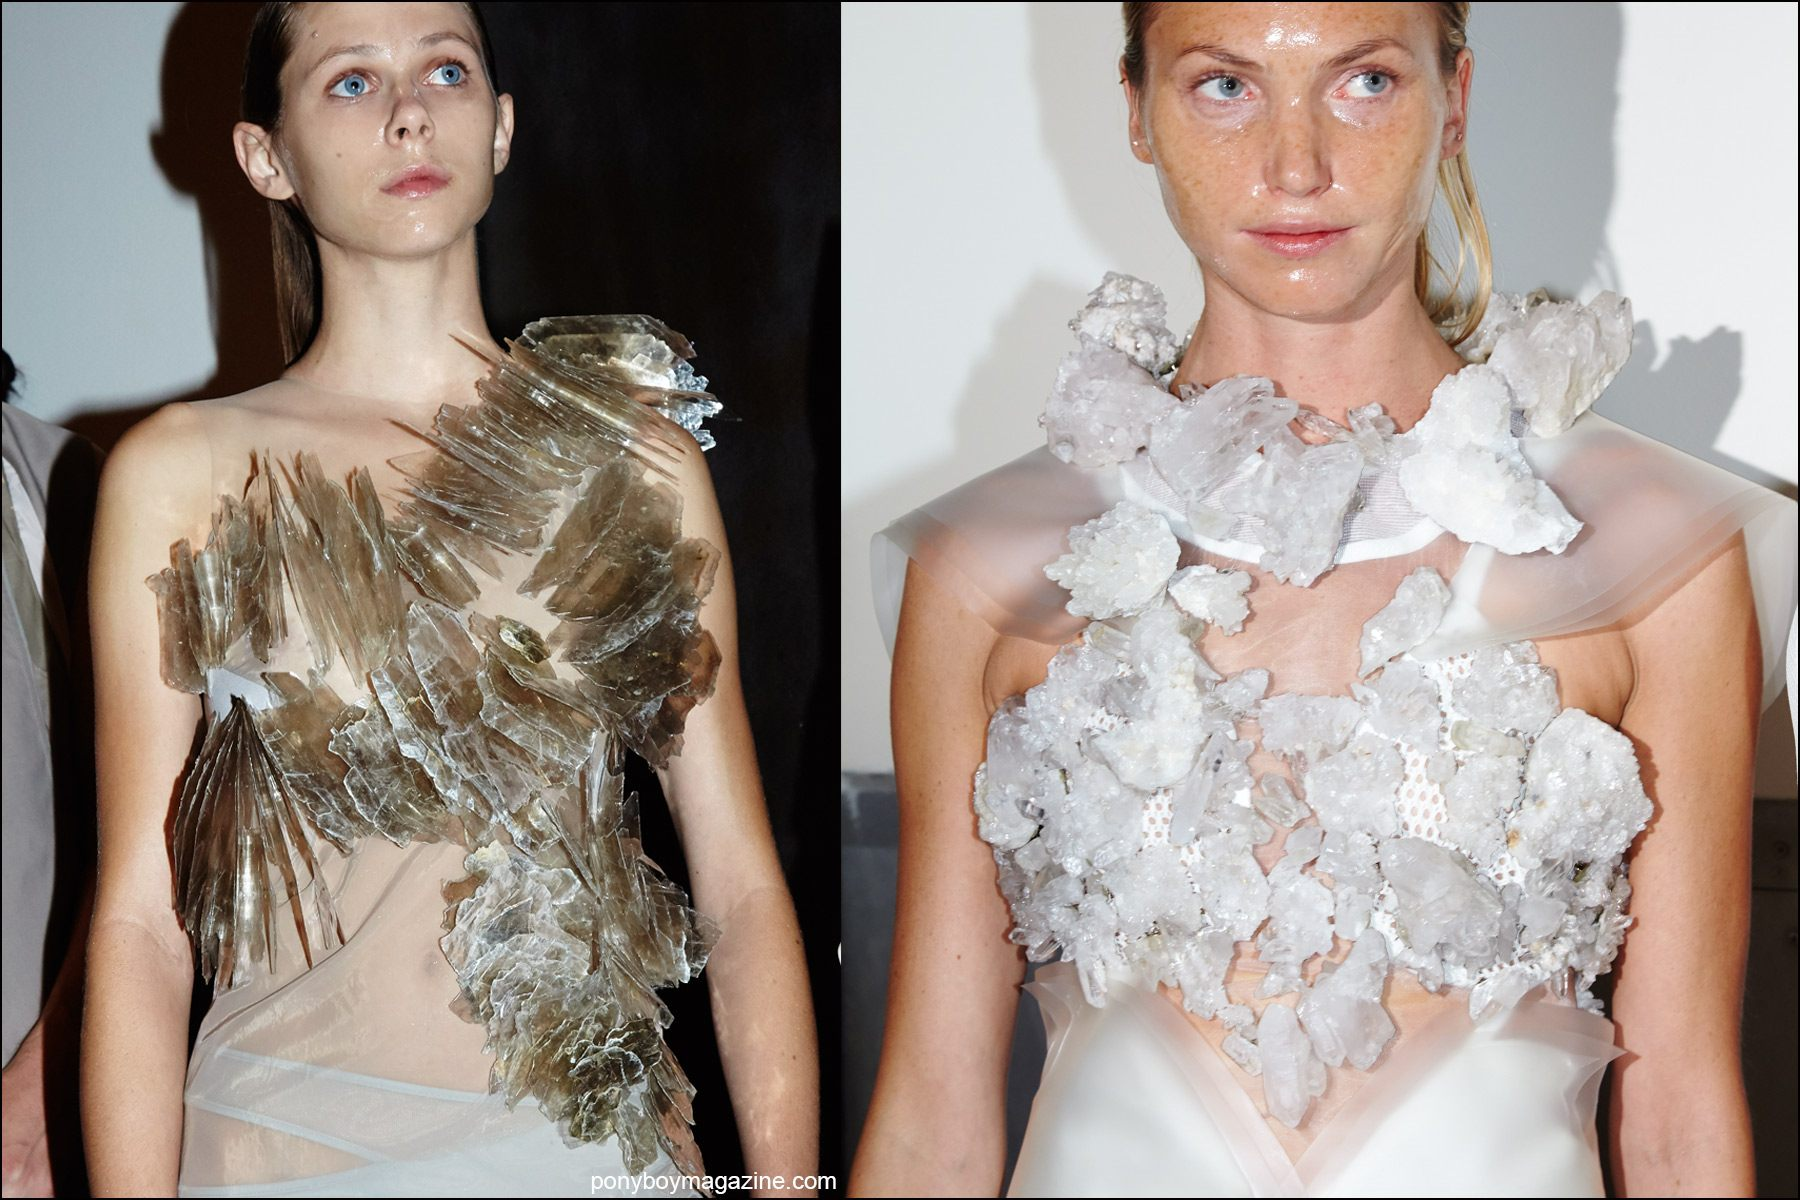 Close-up photographs of models crystal encrusted dresses, backstage at threeASFOUR S/S16. Photographed for Ponyboy magazine NY by Alexander Thompson.